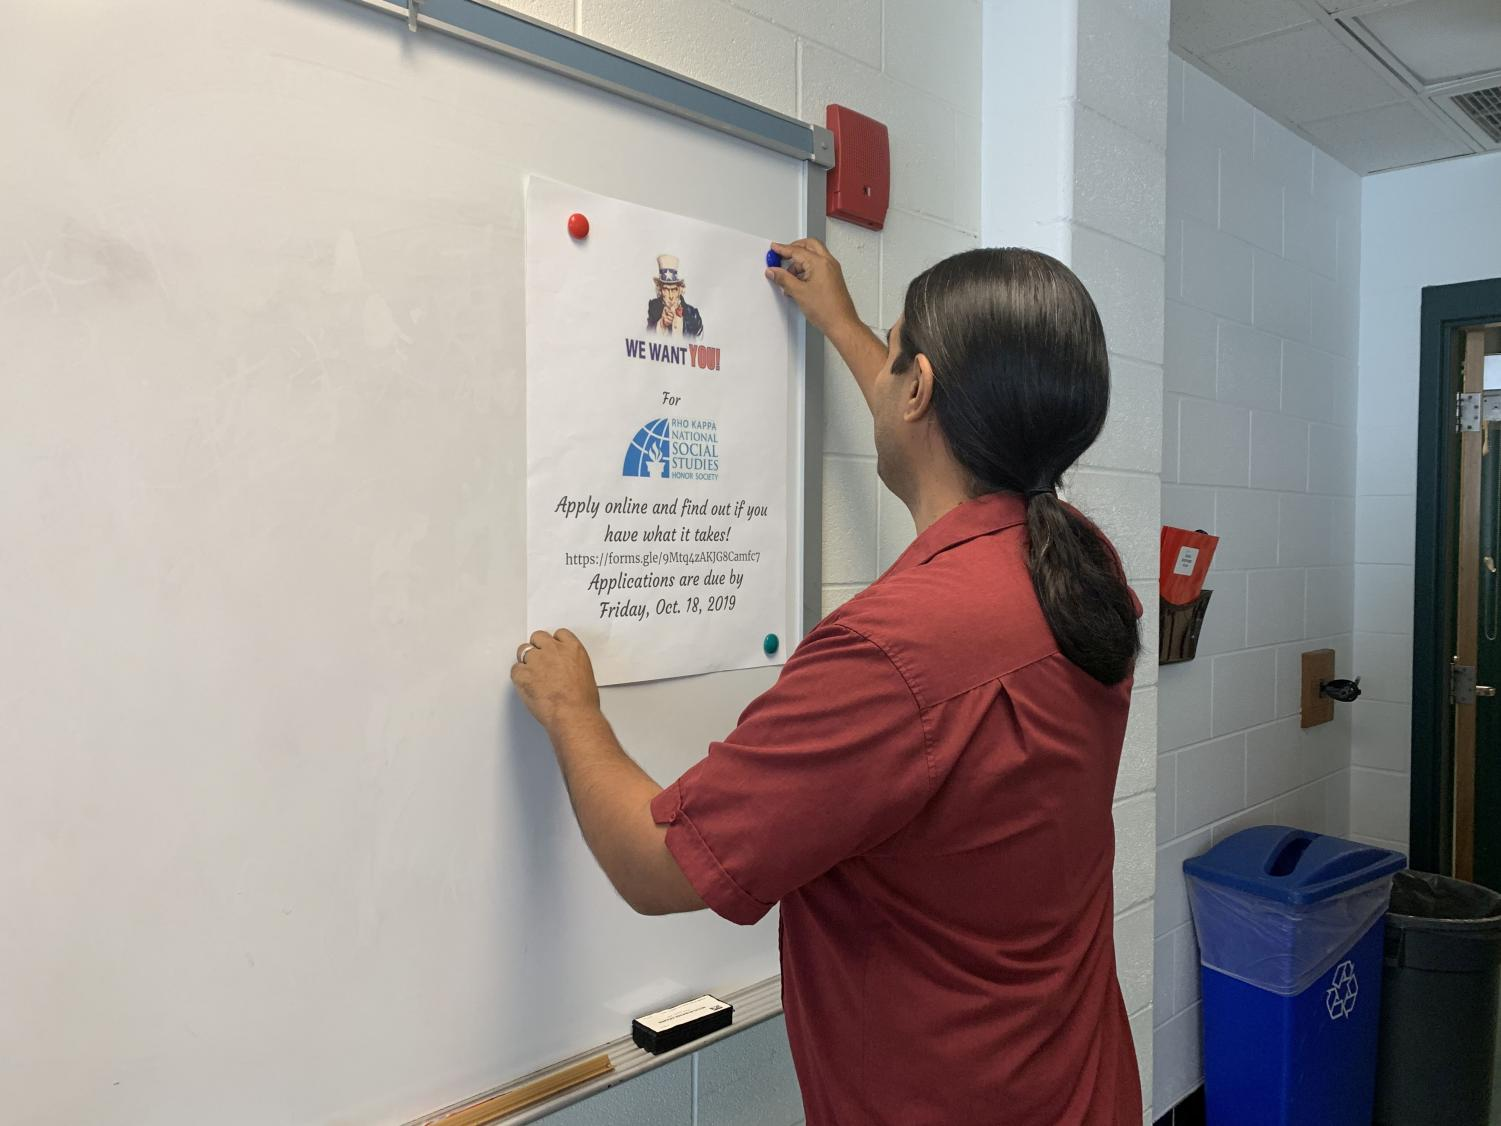 Social Studies teacher Oscar Ramos hangs a poster in his room. Given that it is his first year, decorating the walls makes him feel more settled in.